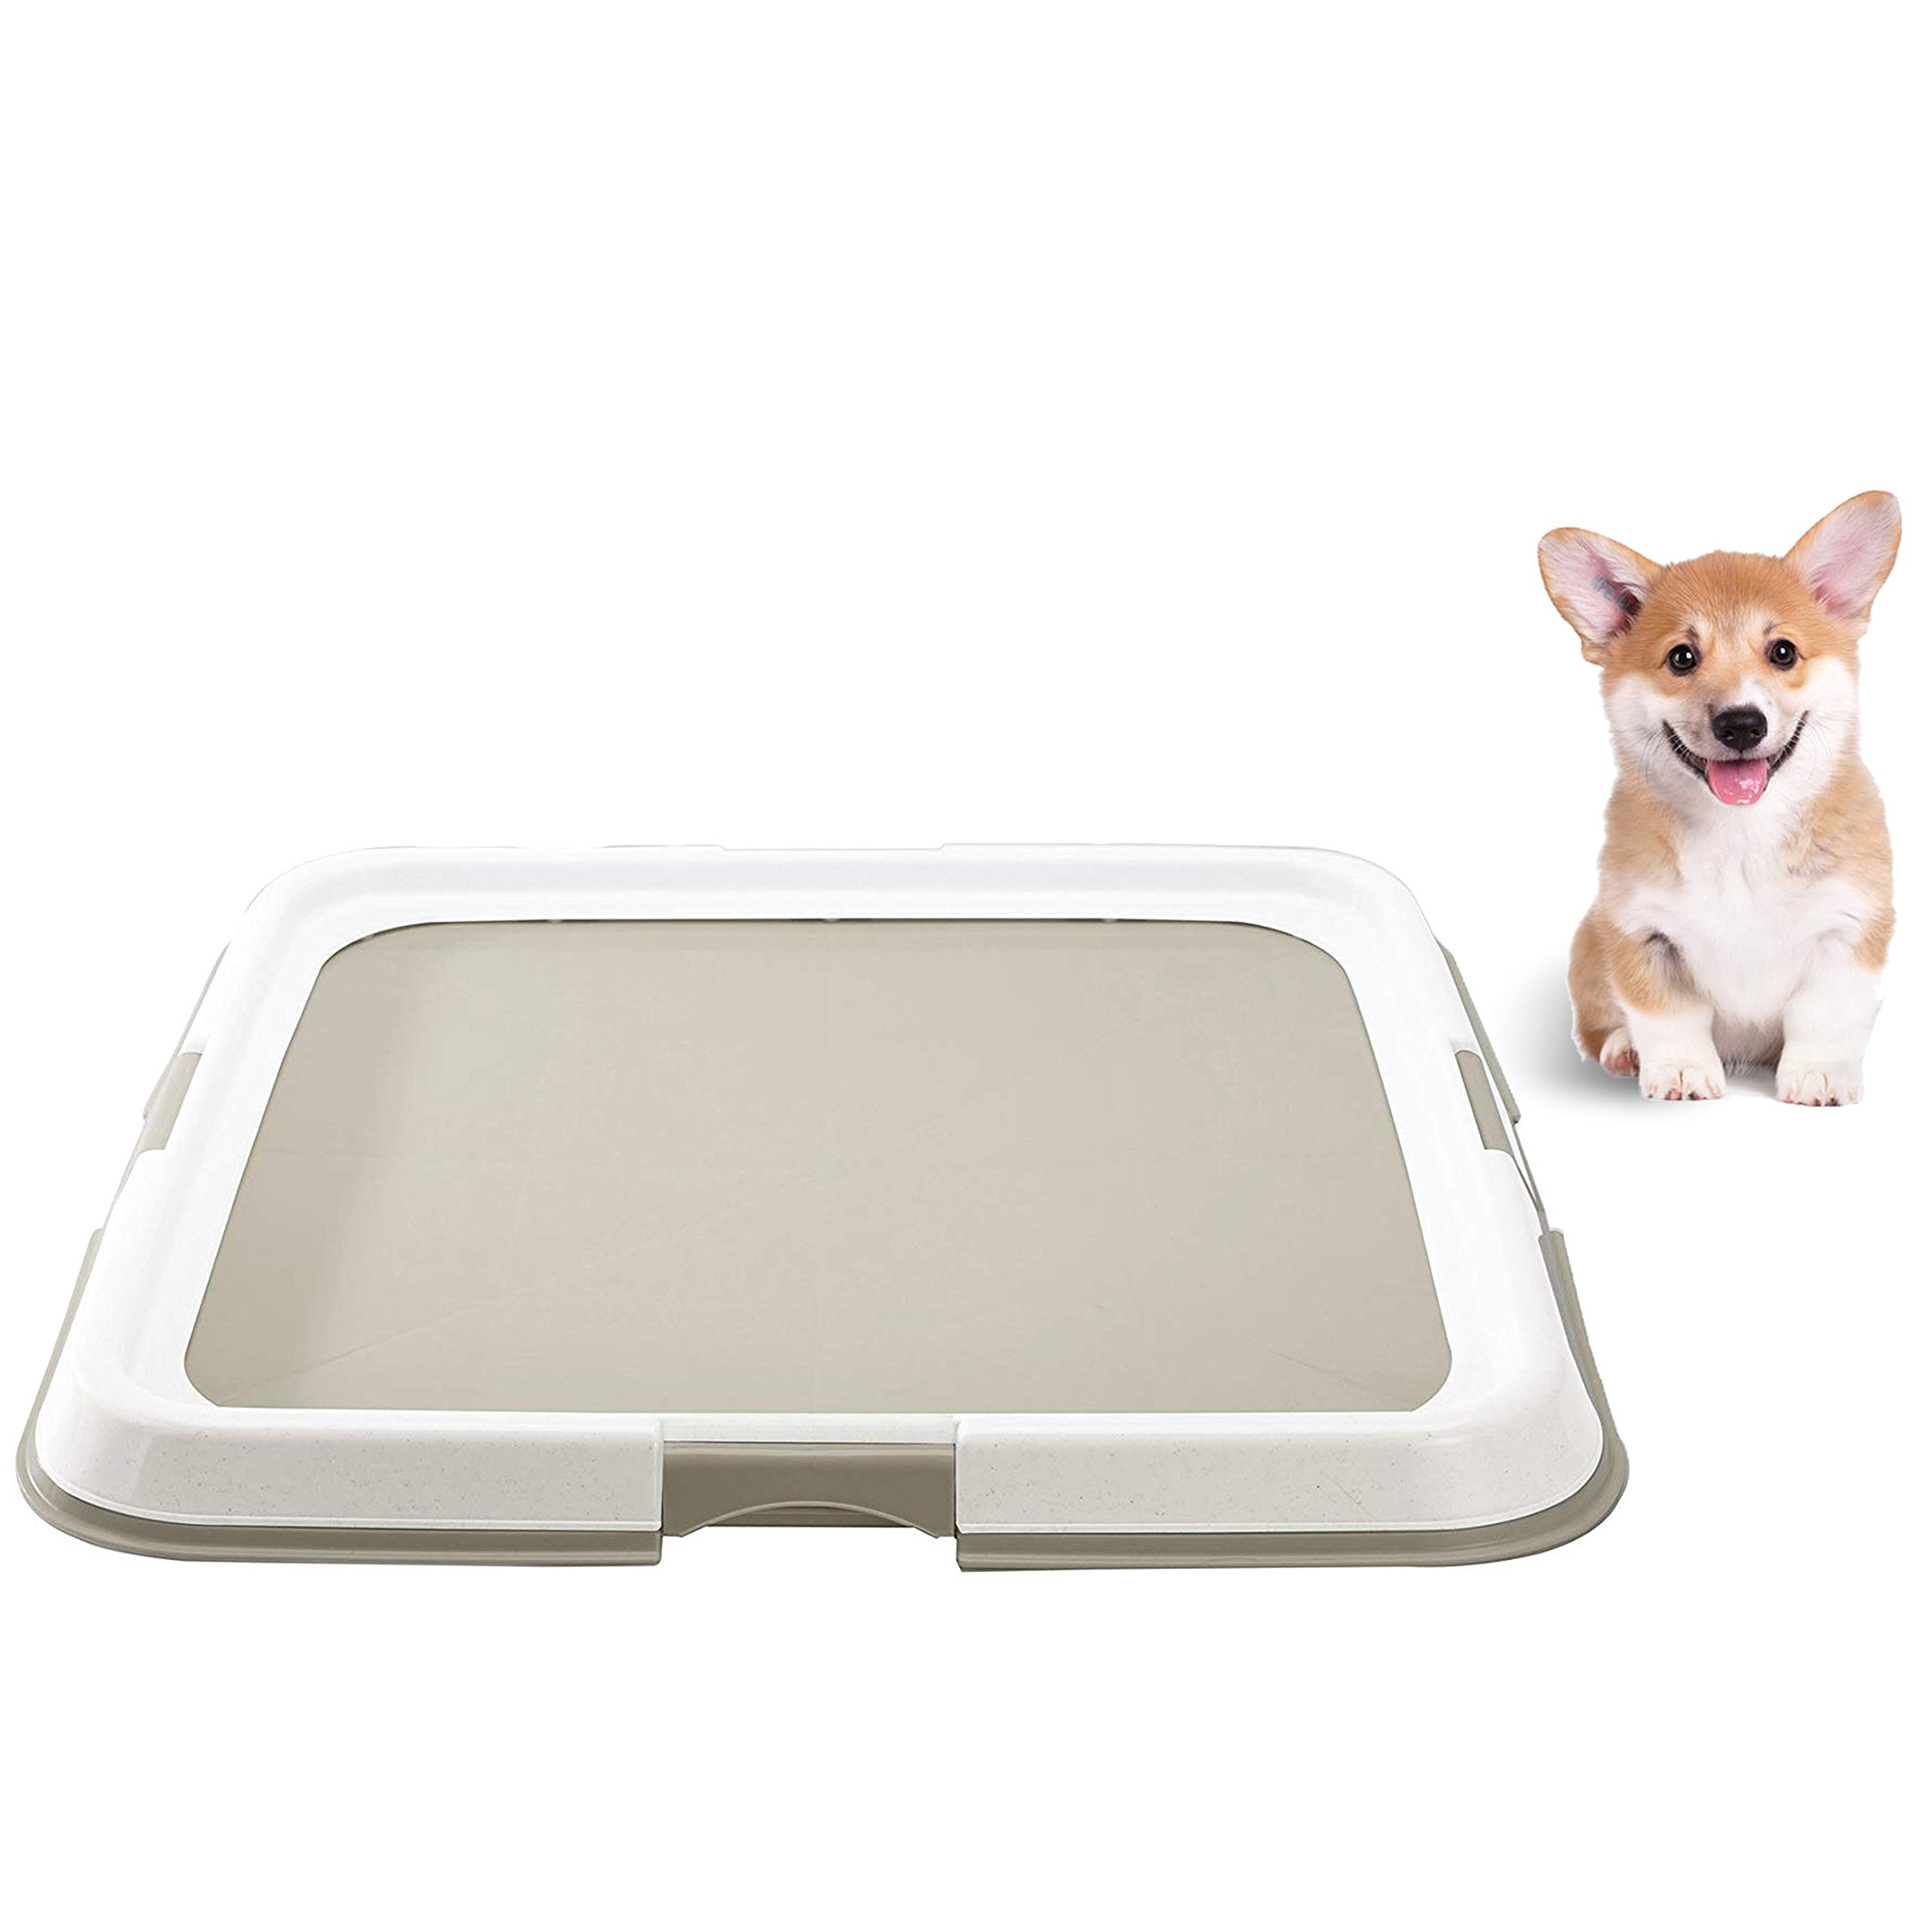 Dogit Puppy Pad Holder Tray, Training Pad Holder for Pee Pads for Dogs by Dogit